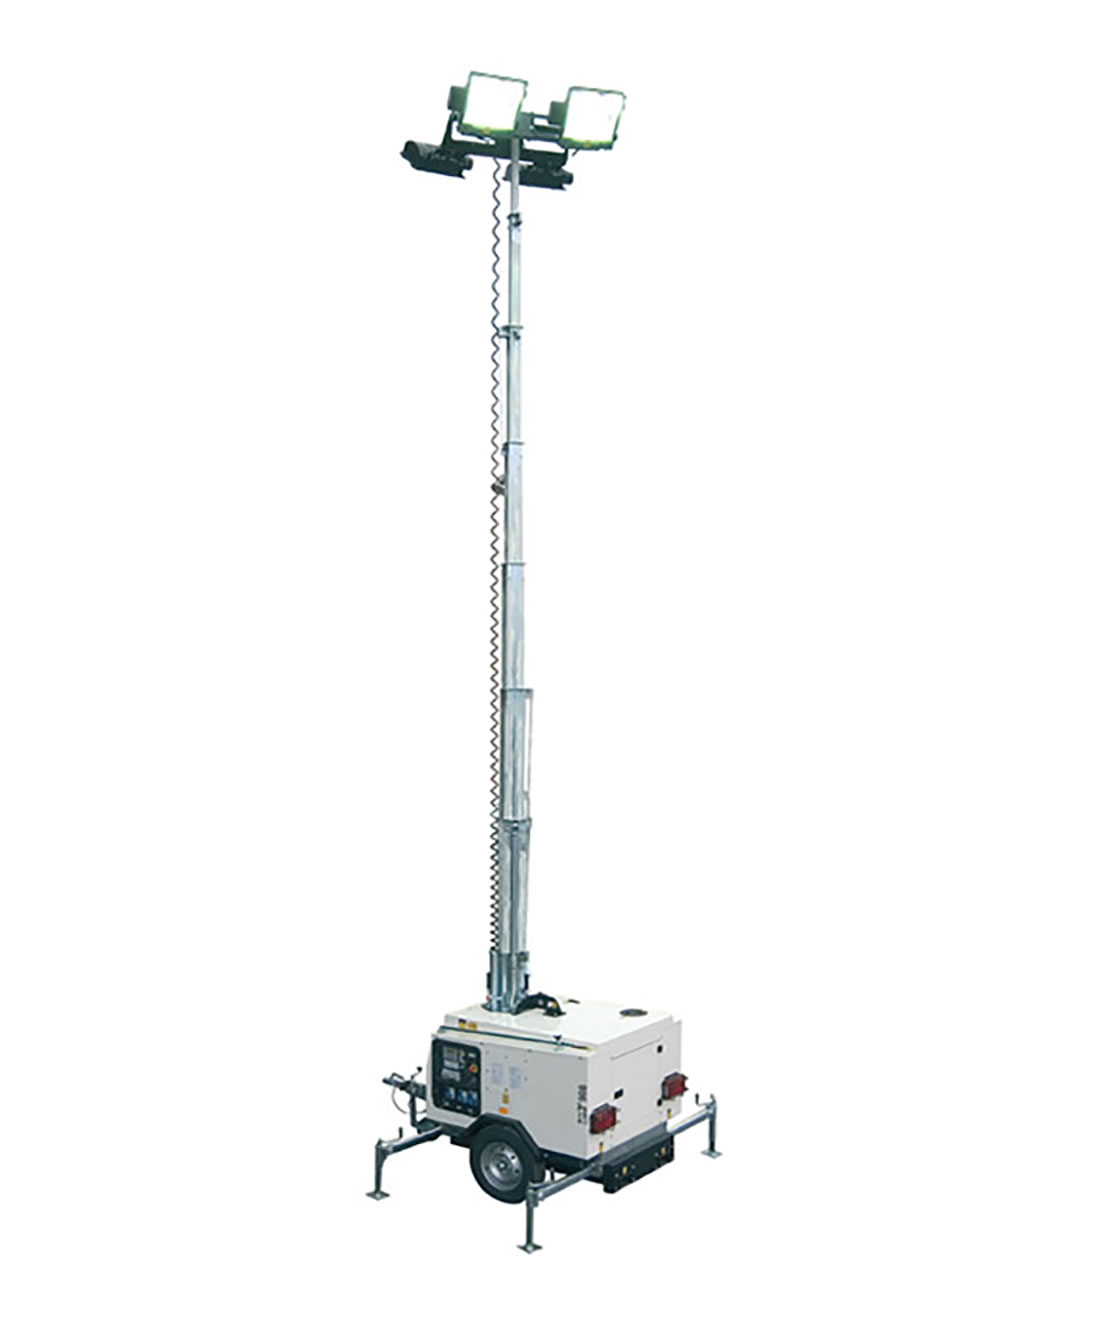 8kVA Lighting Tower